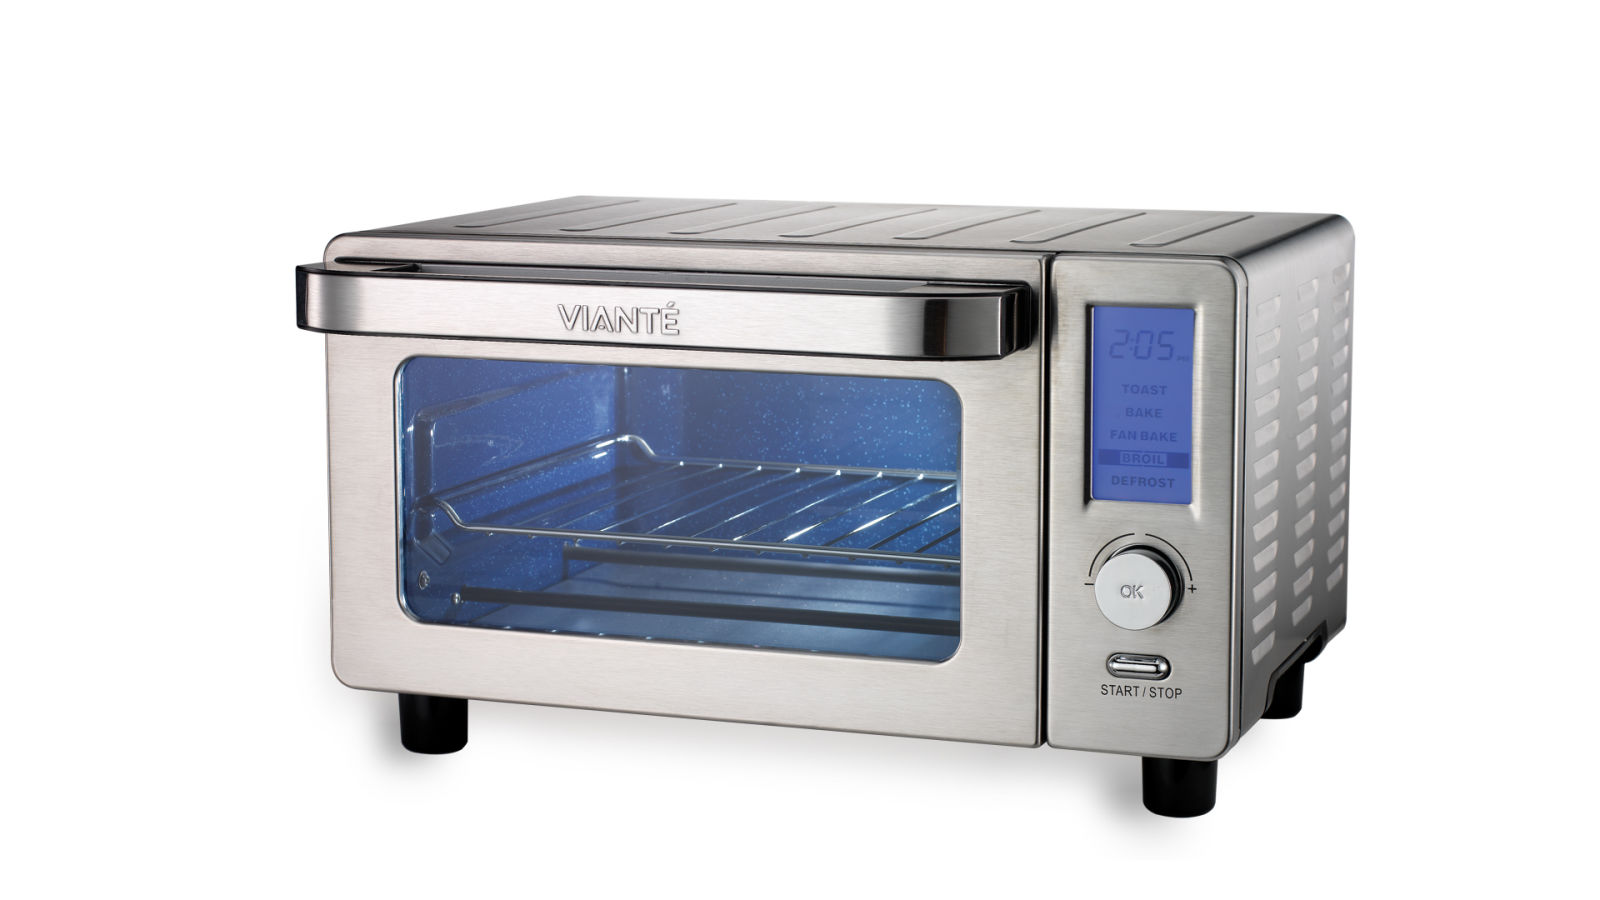 Oven Toaster: Viante True Blue Convection Toaster Oven